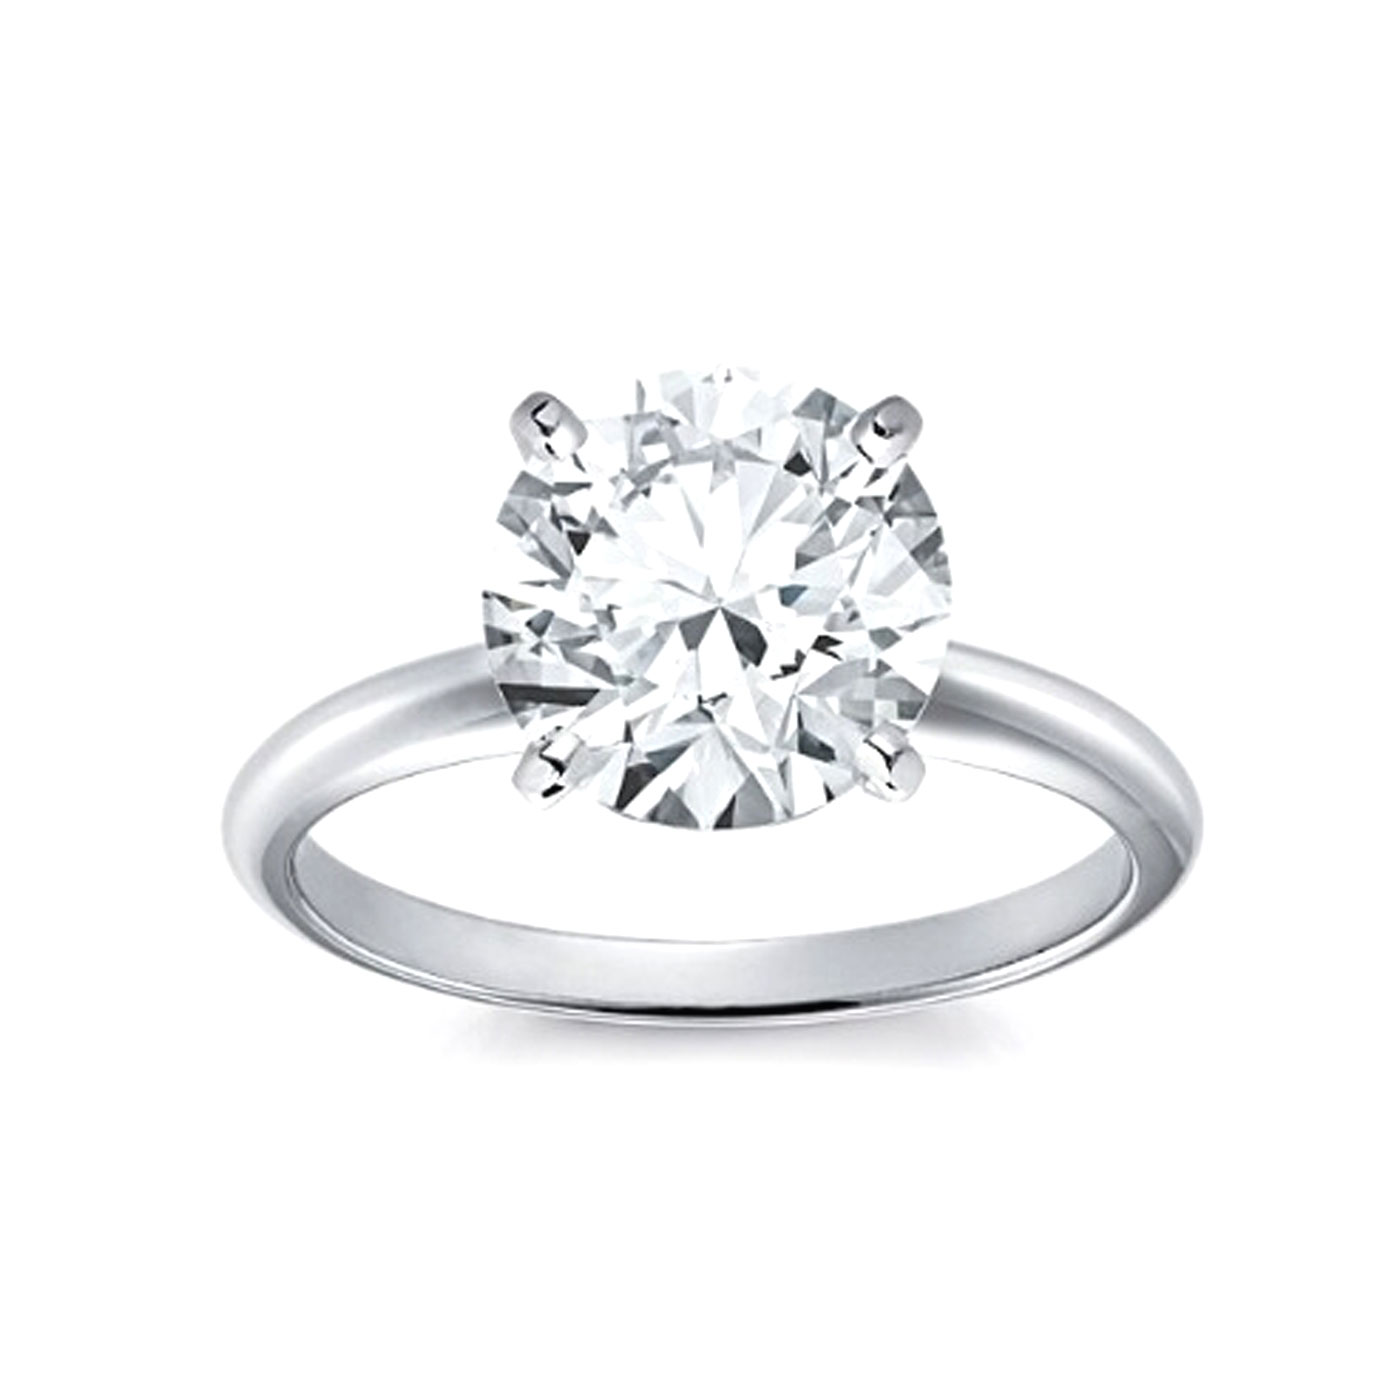 14kt Classic Solitaire Style Ring With 171 Carat Gsi1 Round Diamond For